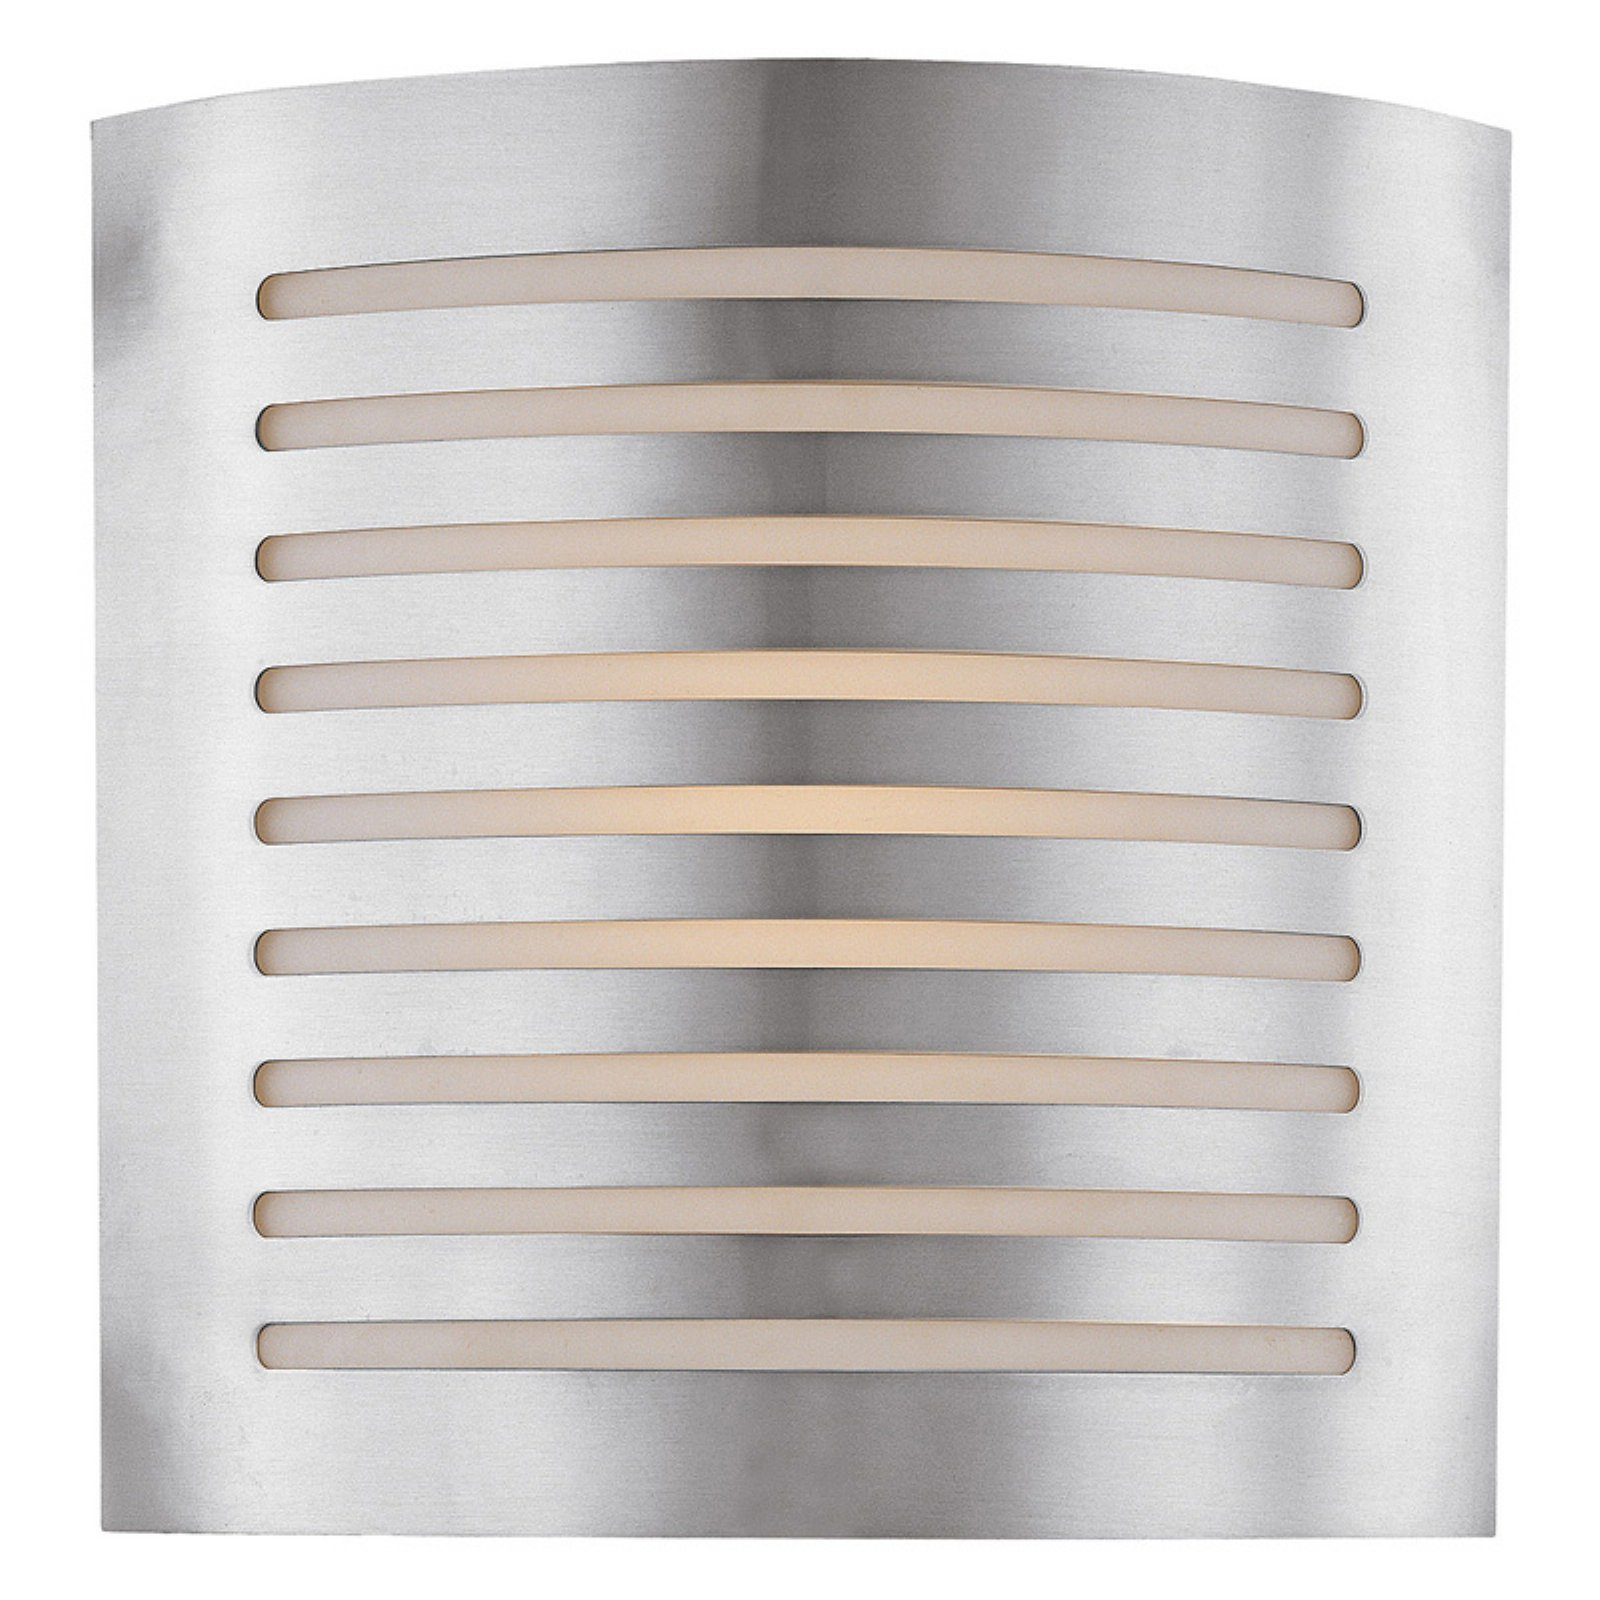 Access Lighting Krypton C53340BSOPLEN1226B Wall Sconce